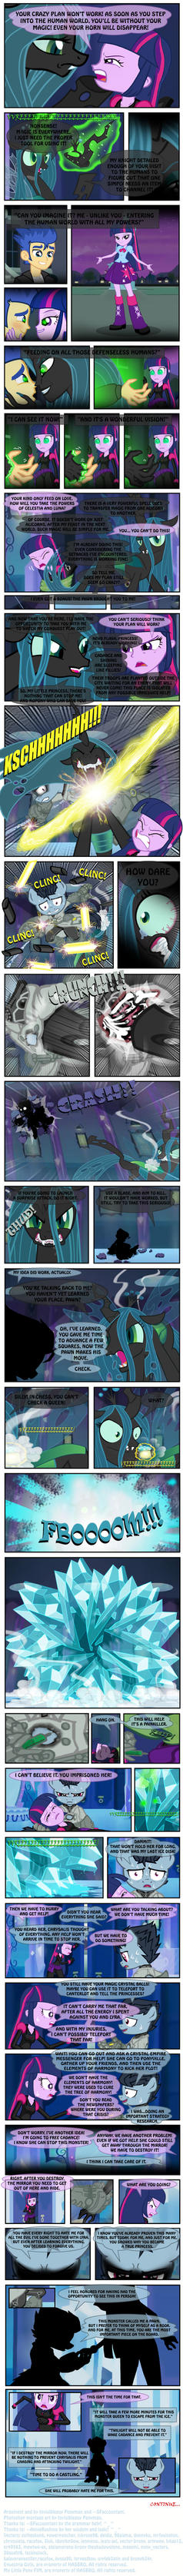 BY SKYWALKER'S HAND! (Part 33 of 35) by INVISIBLEGUY-PONYMAN